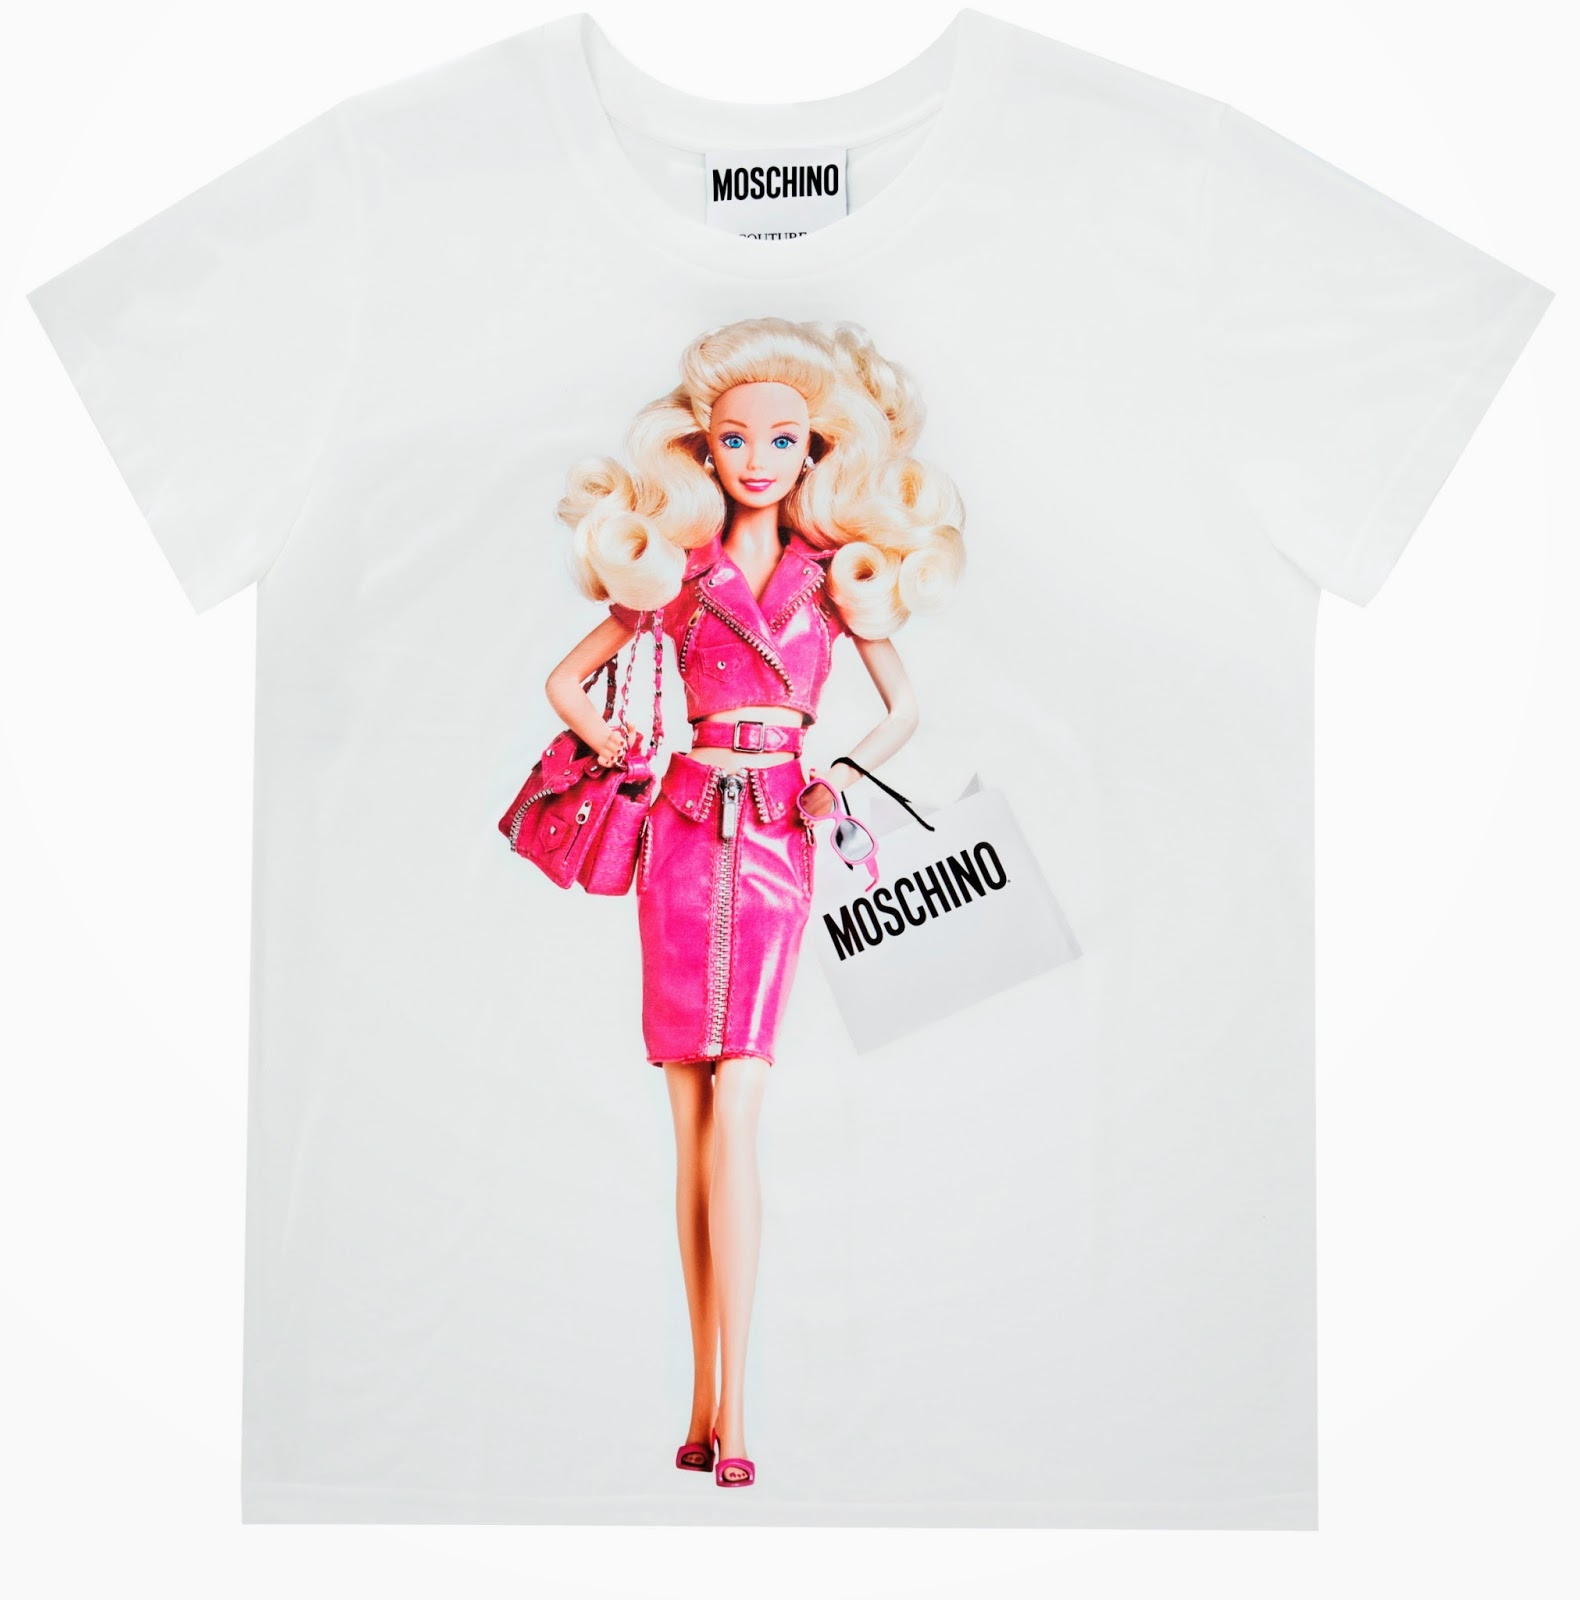 Moschino Barbie Fashion